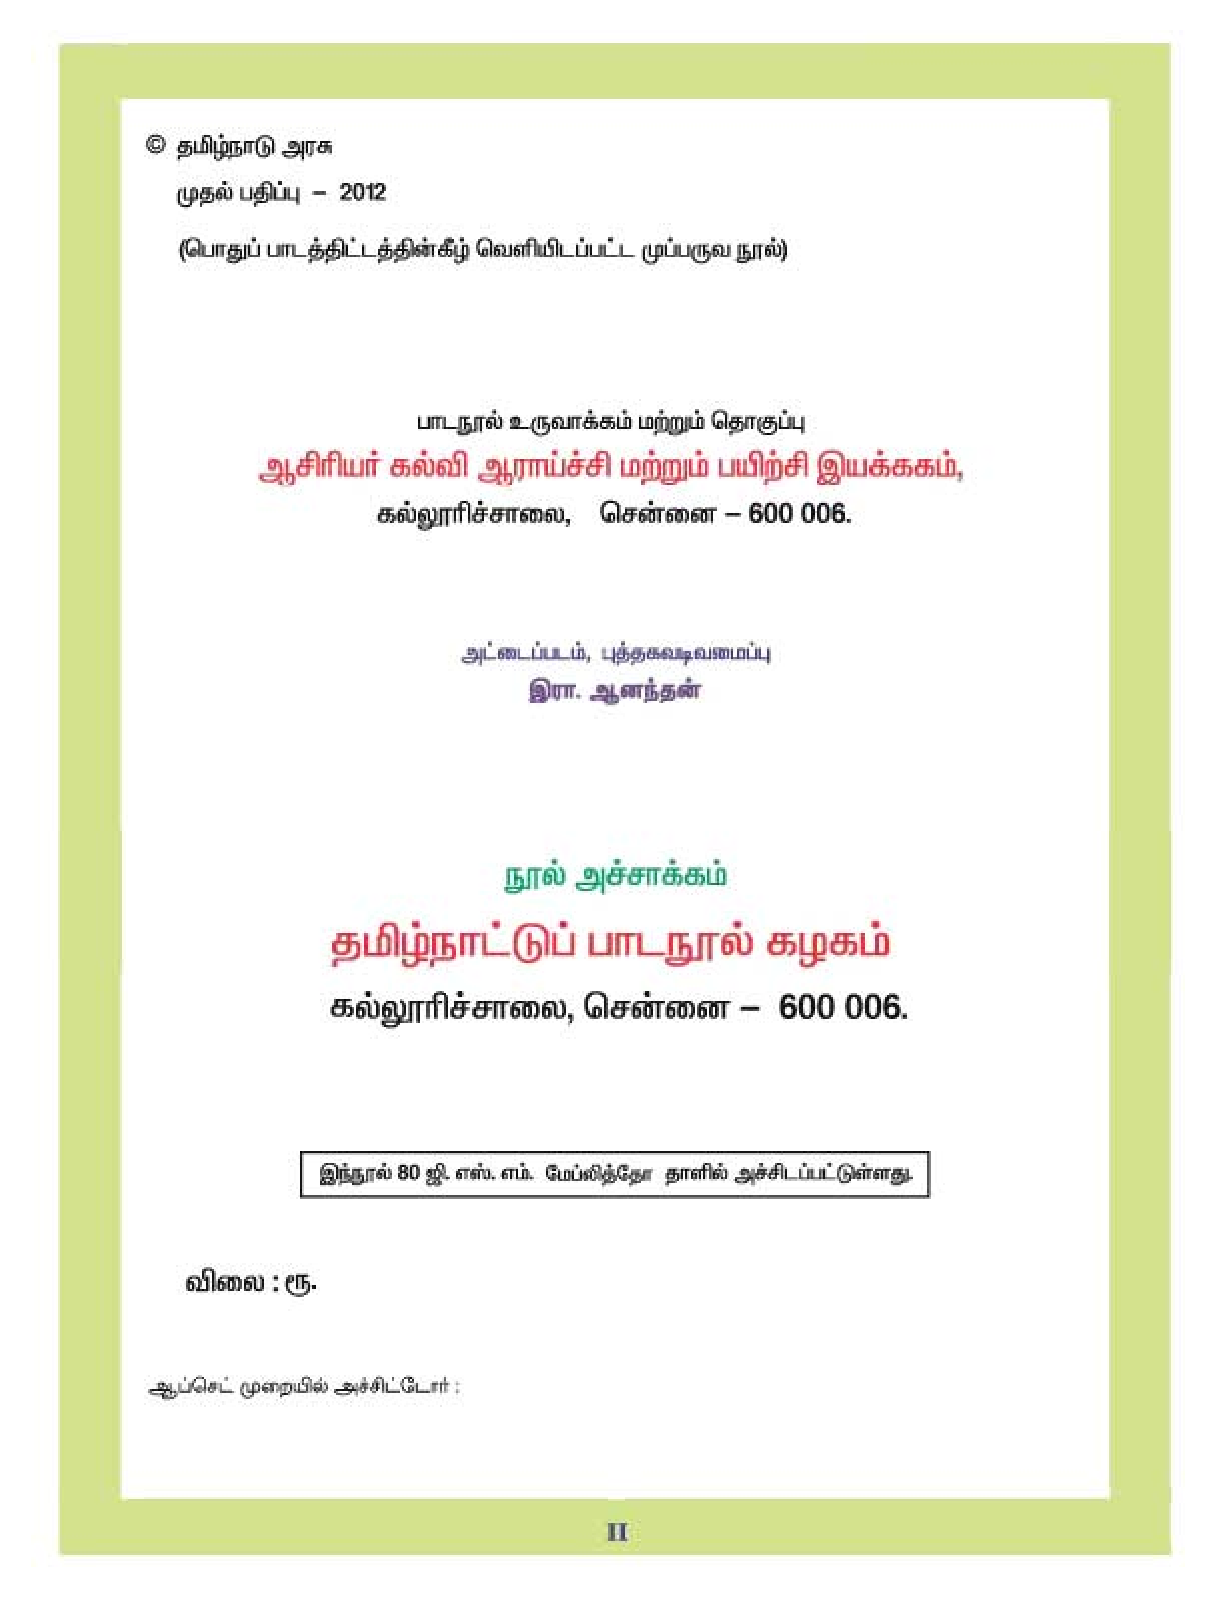 thesiya orumaipadu in tamil language essays and term papers Thesiya orumaipadu in tamil language essays and term papers tamil /ˈtæmɪl/[8] (தமிழ், tamiḻ, [t̪ɐmɨɻ] ) is a dravidian language spoken predominantly by tamil people of south india and north-east sri lanka.